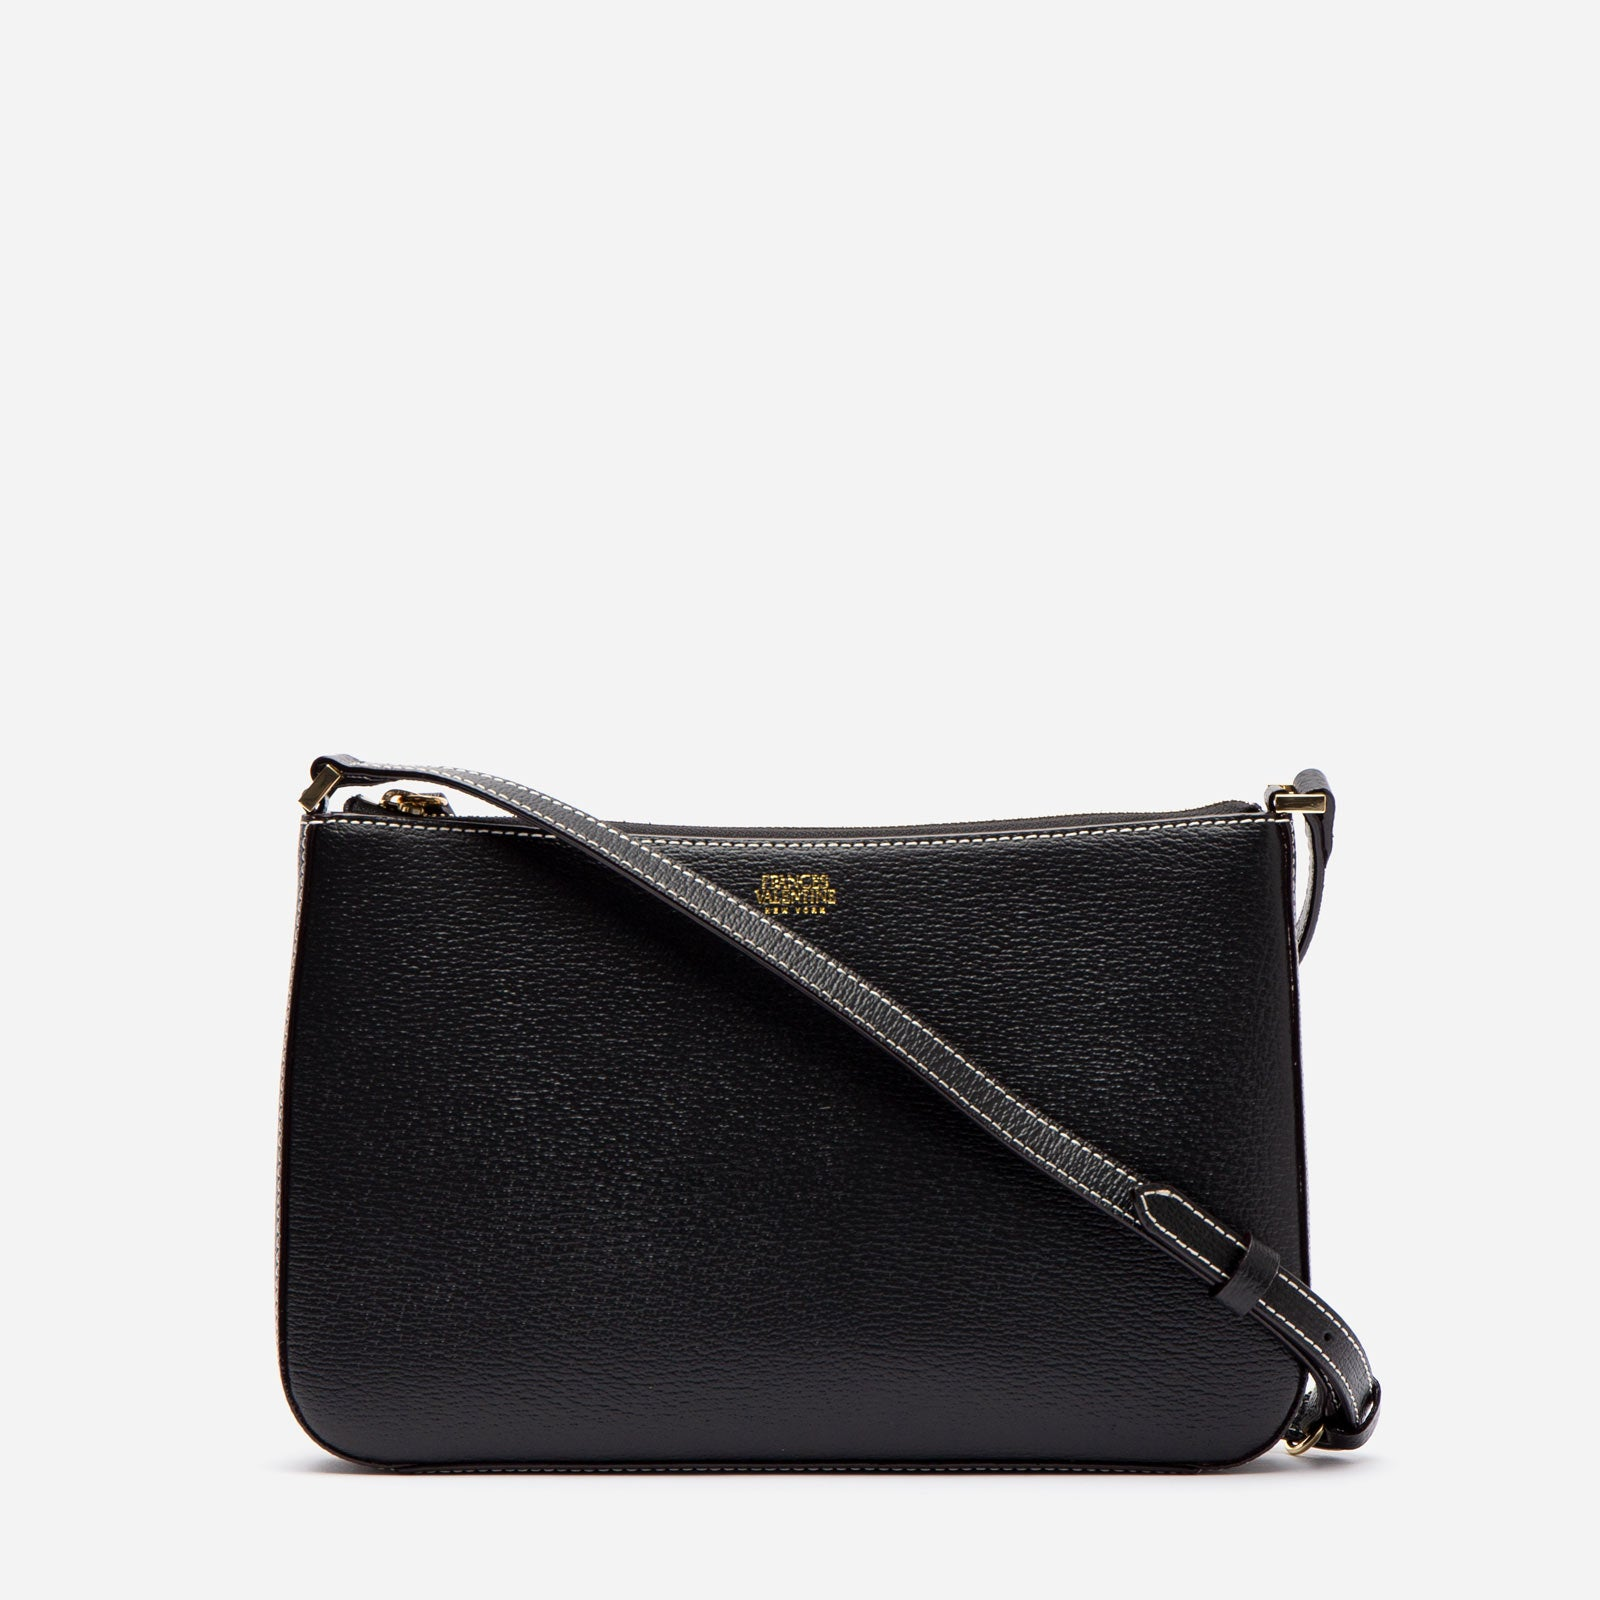 Poppy Crossbody Boarskin Leather Black - Frances Valentine